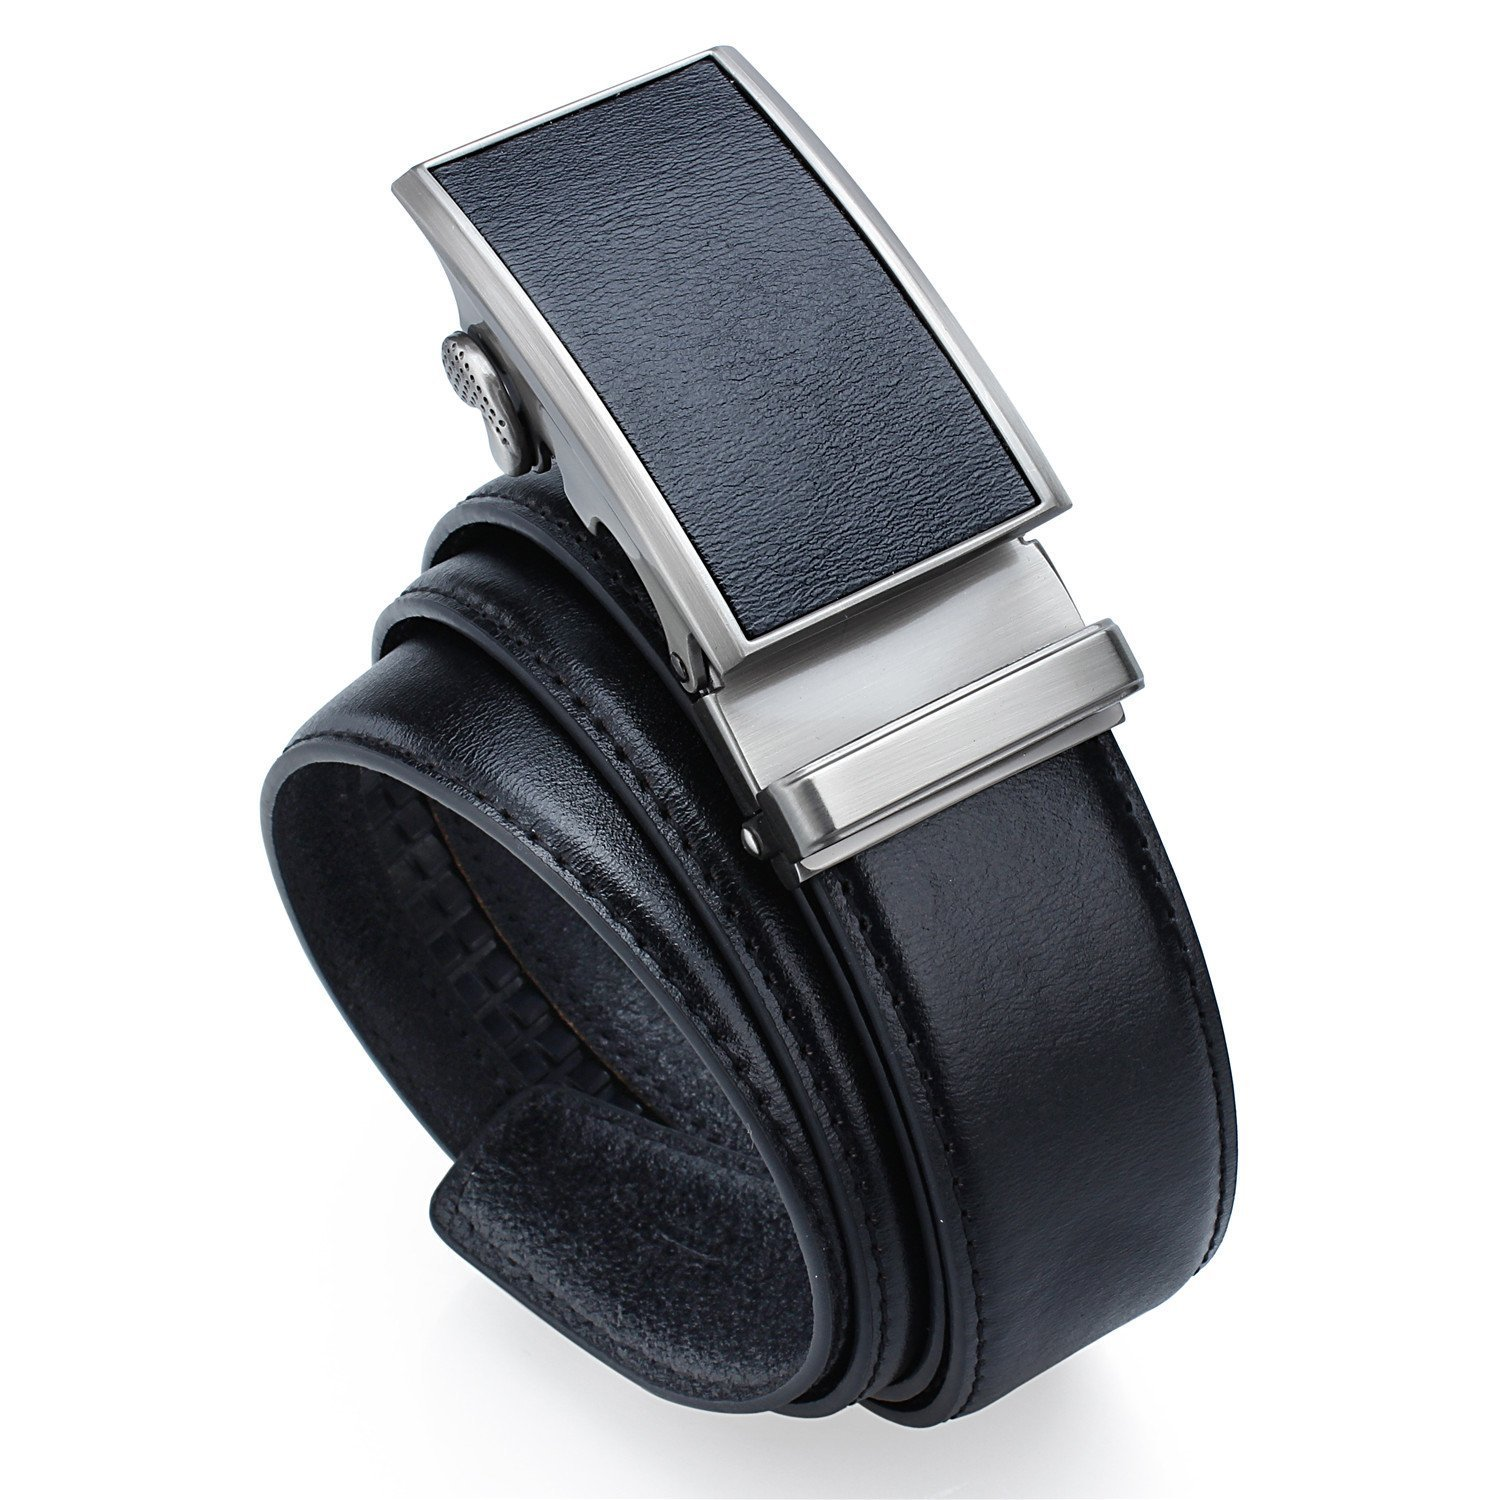 Ratchet Genuine Leather Belt with Automatic Buckle - 1.4'' Wide Belt in 3 Colors for Men Big and Tall